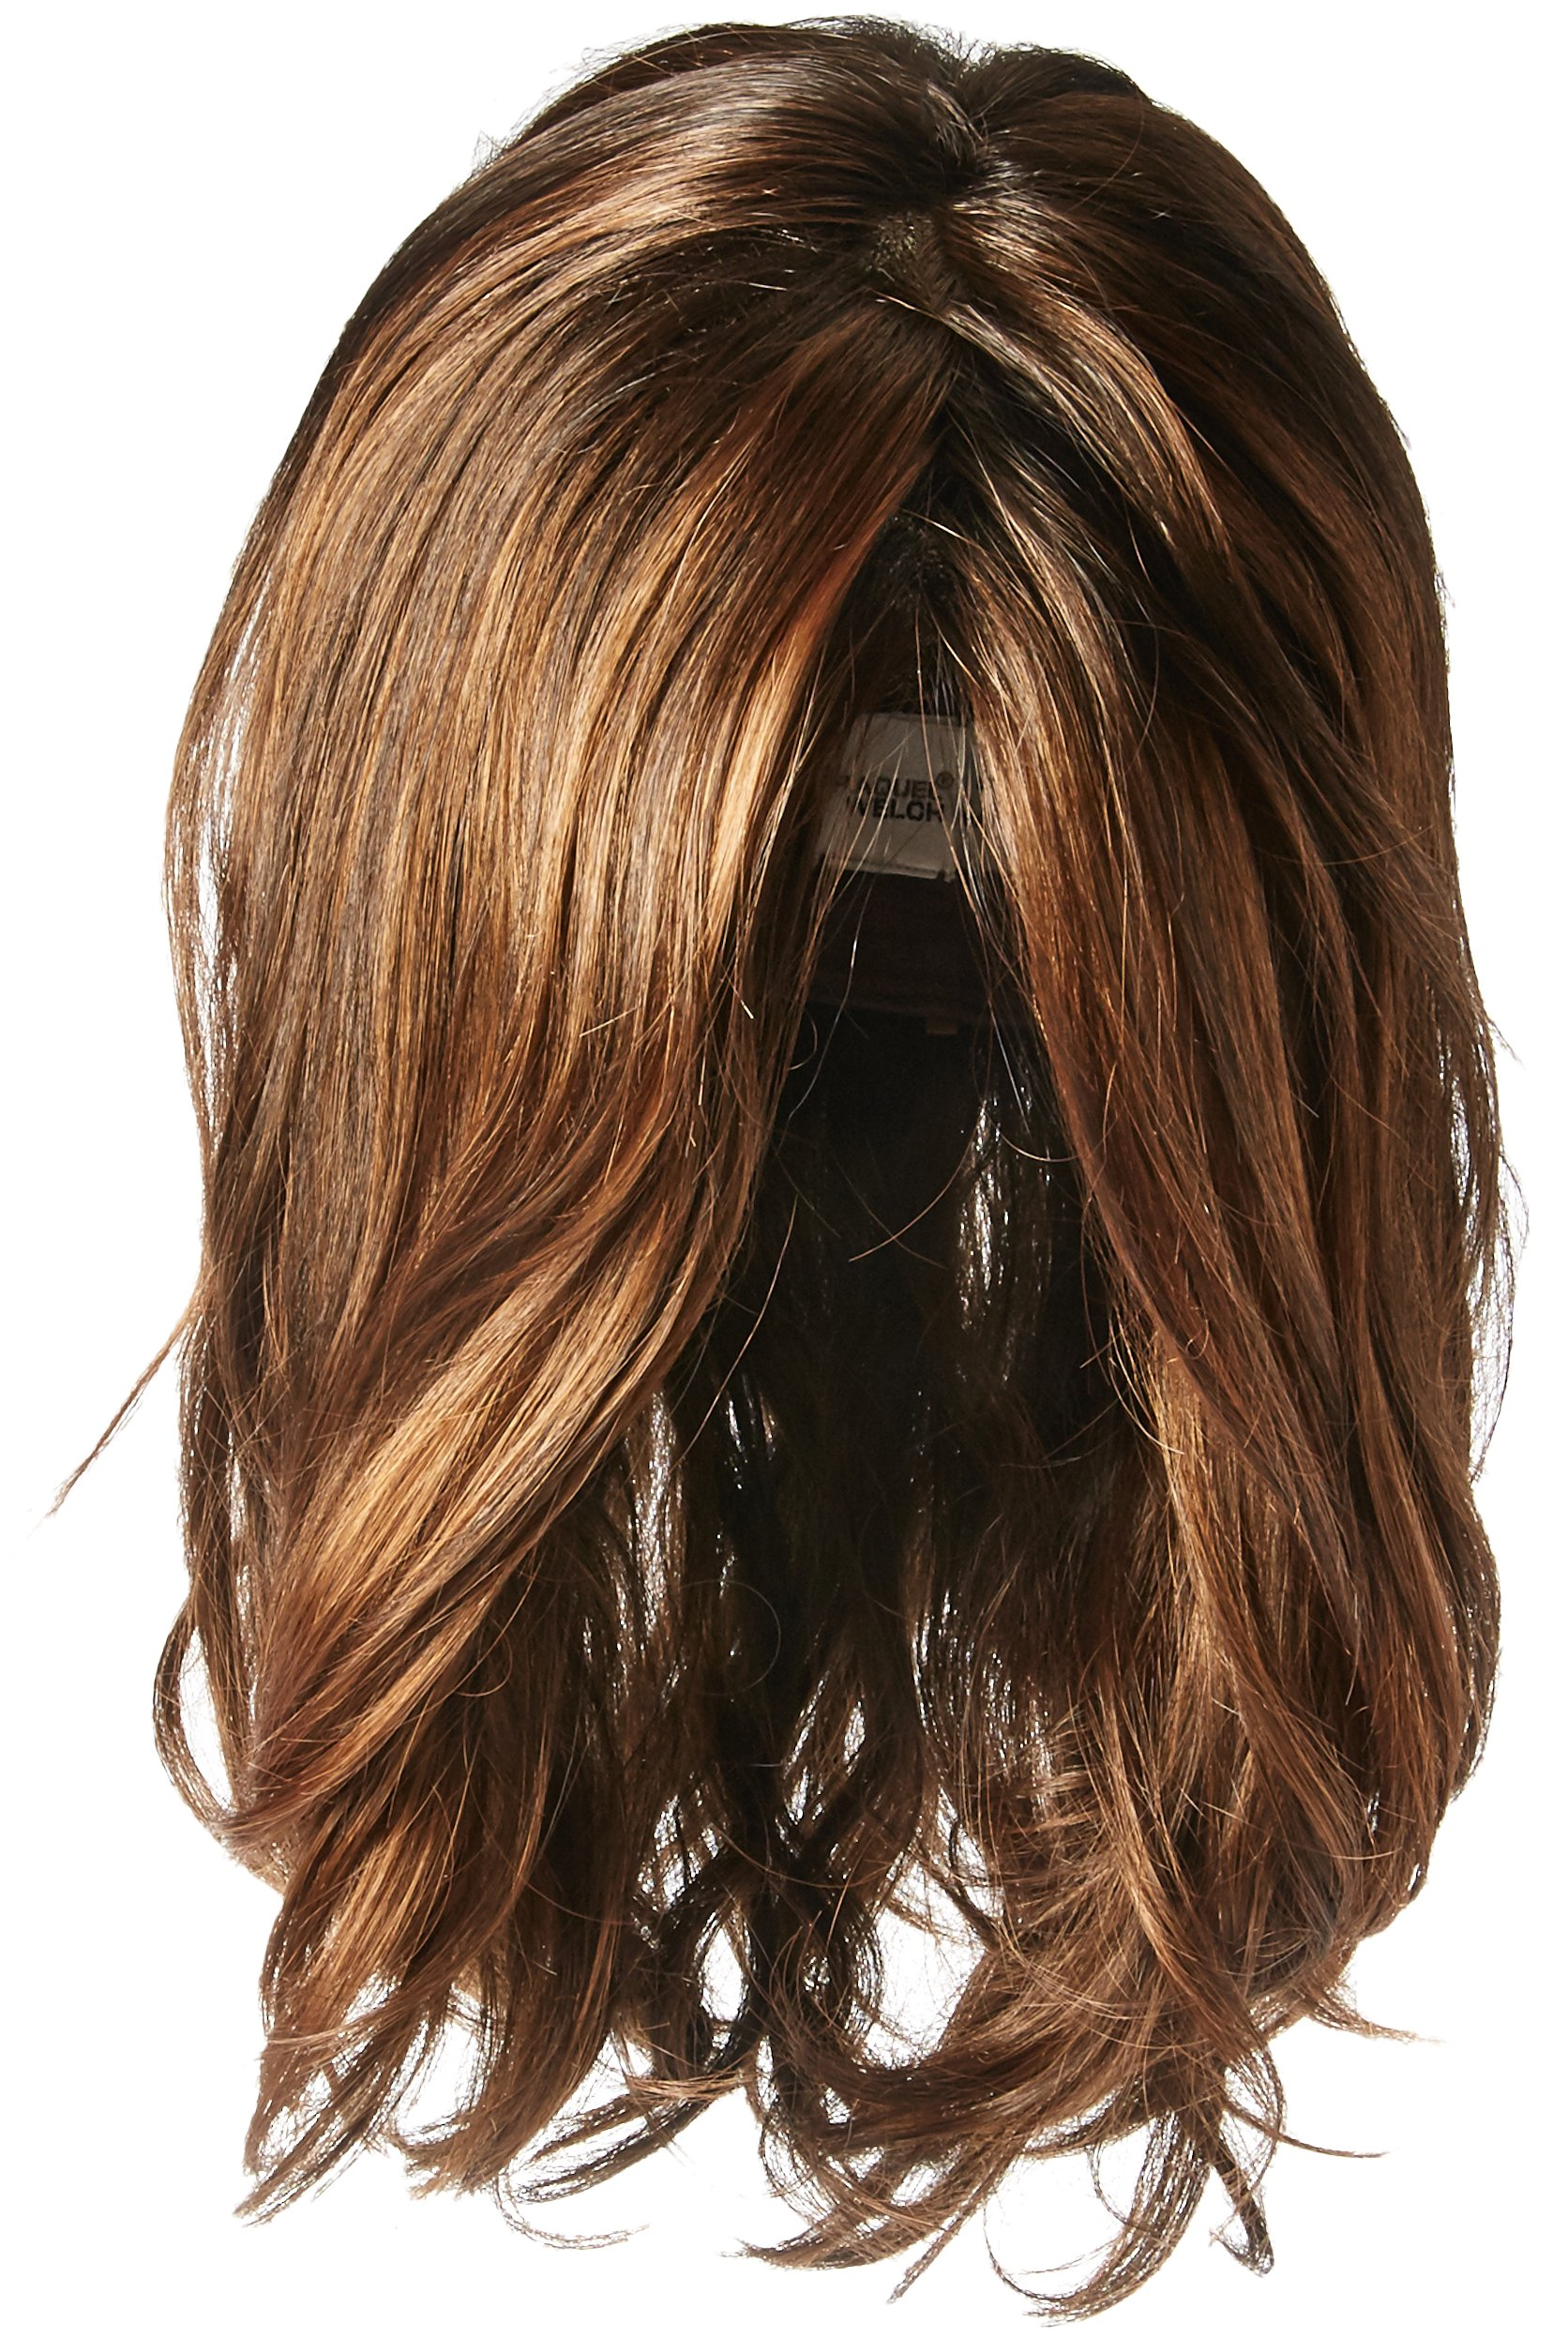 Hairdo Love Love Love Long Full Length Straight Hair With Soft Natural Wave Highlights, ss9/30 Cocoa by Hairuwear by Hair u wear